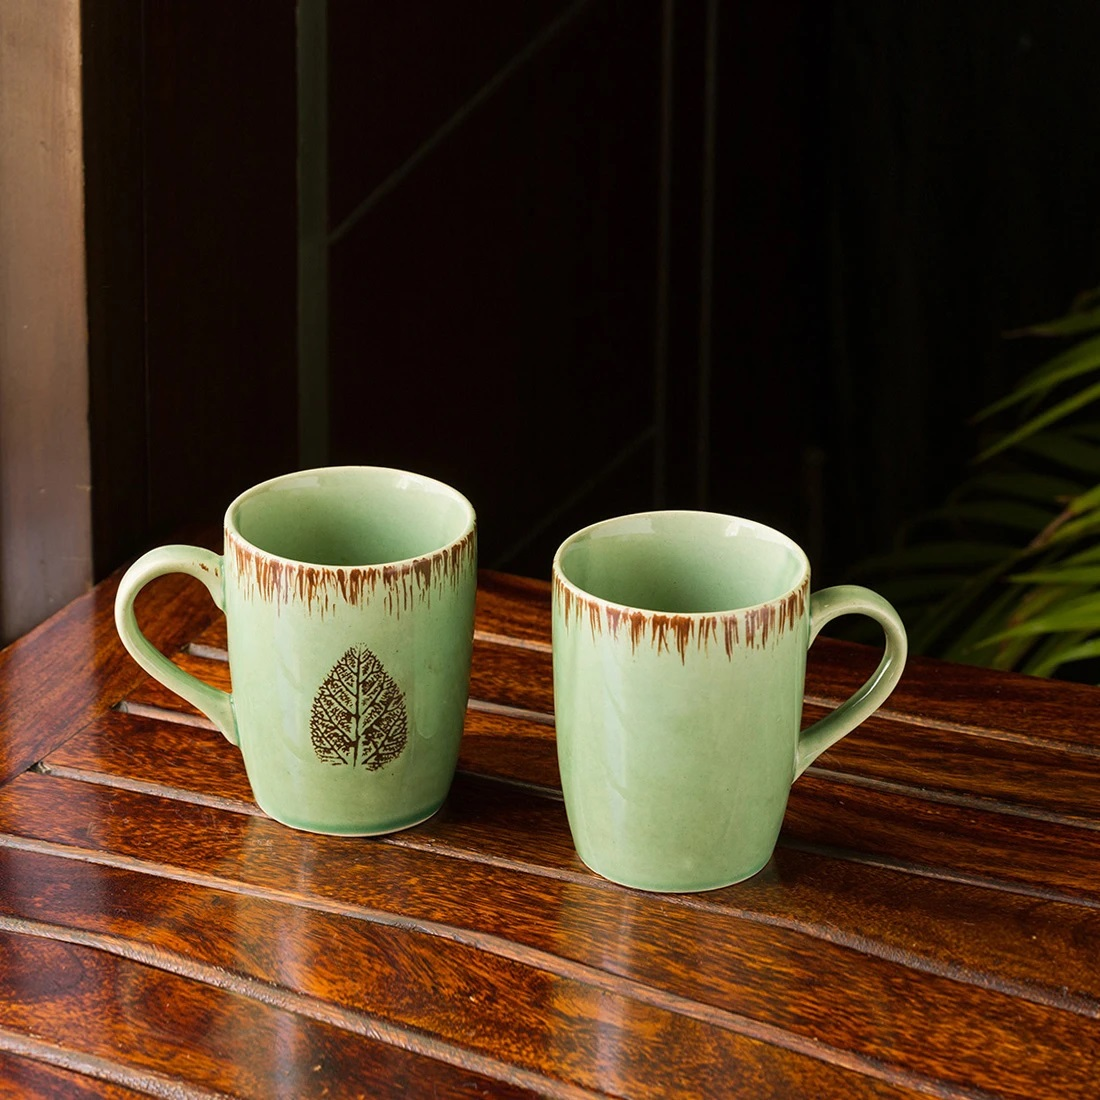 Moorni Banyan Leaves Hand-painted Studio Pottery Tea & Coffee Mugs In Ceramic (Set of 2, Microwave Safe)